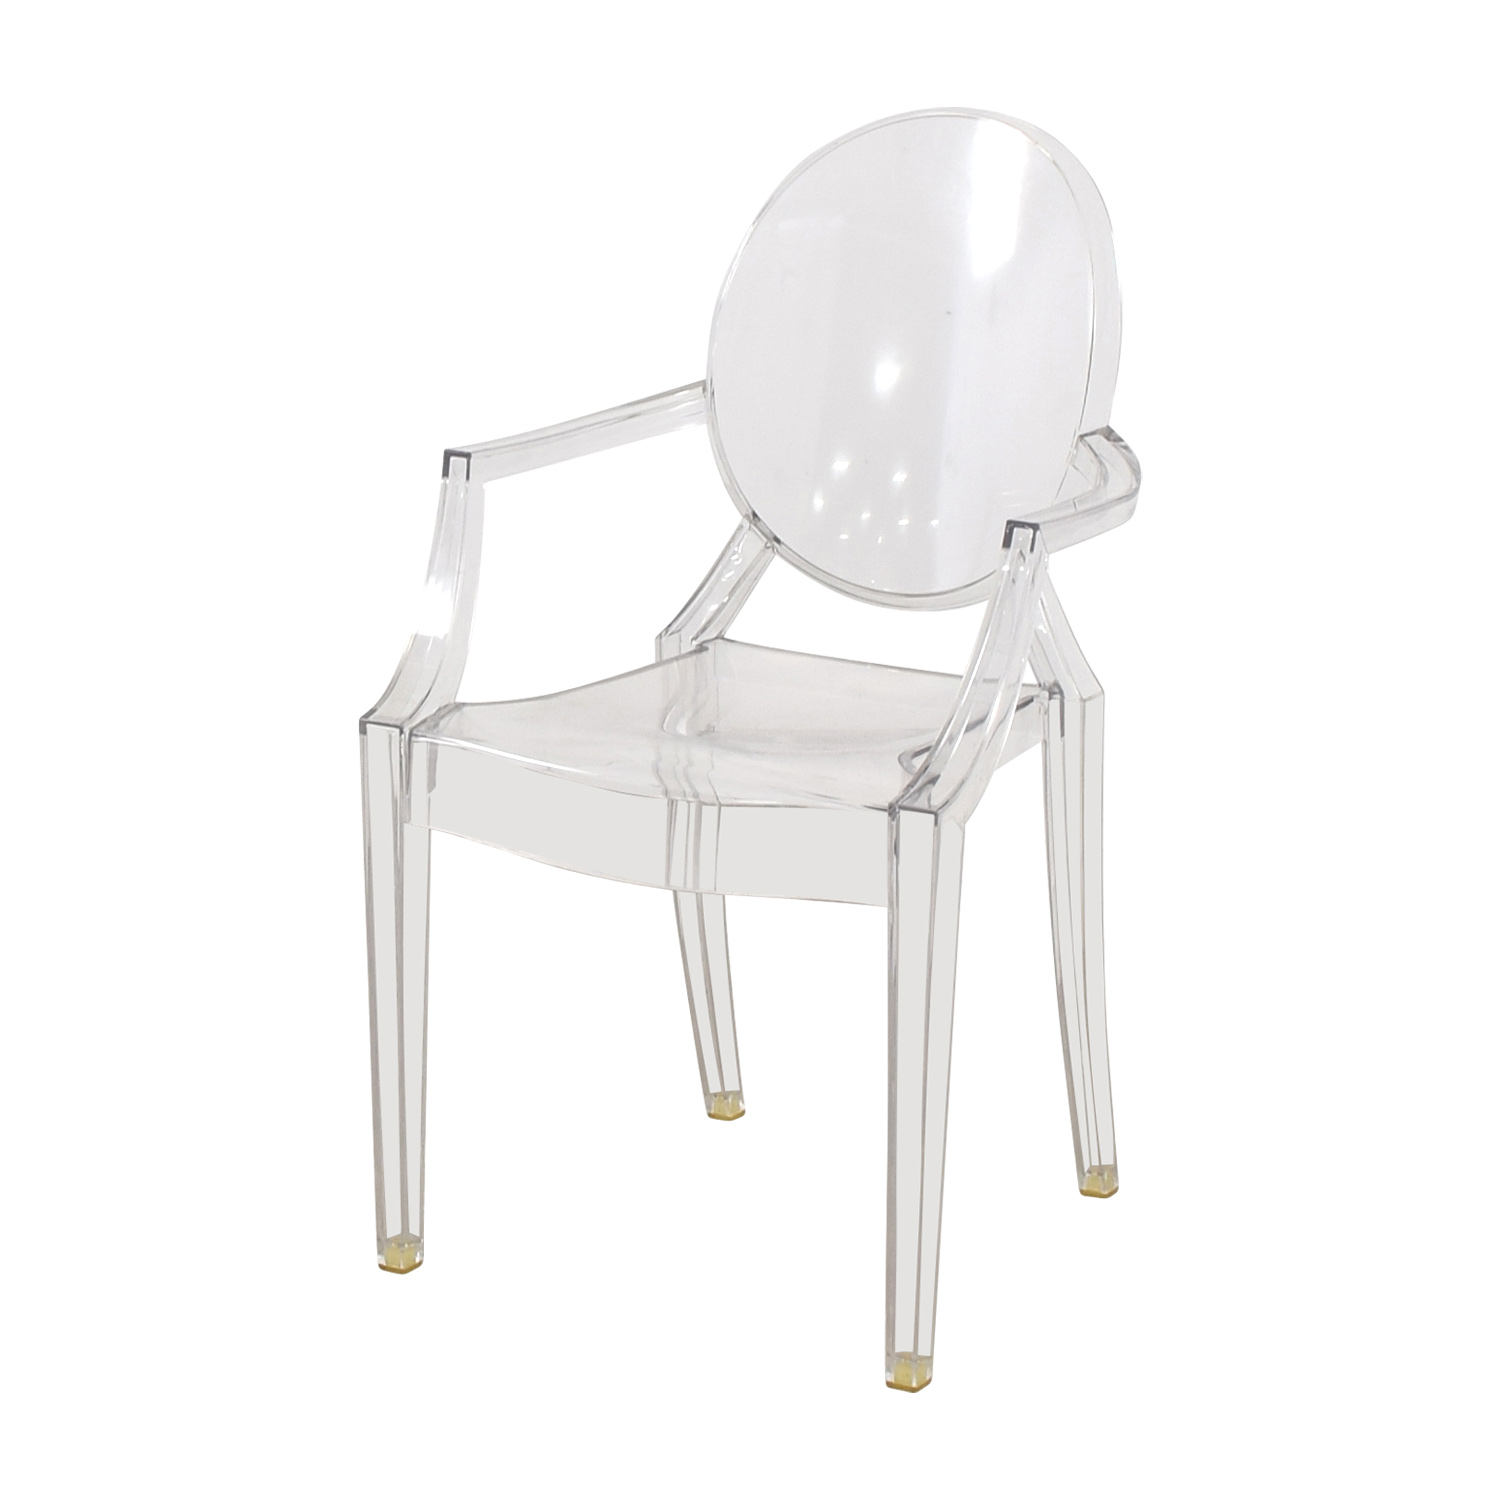 68 off kartell kartell louis ghost chair chairs. Black Bedroom Furniture Sets. Home Design Ideas